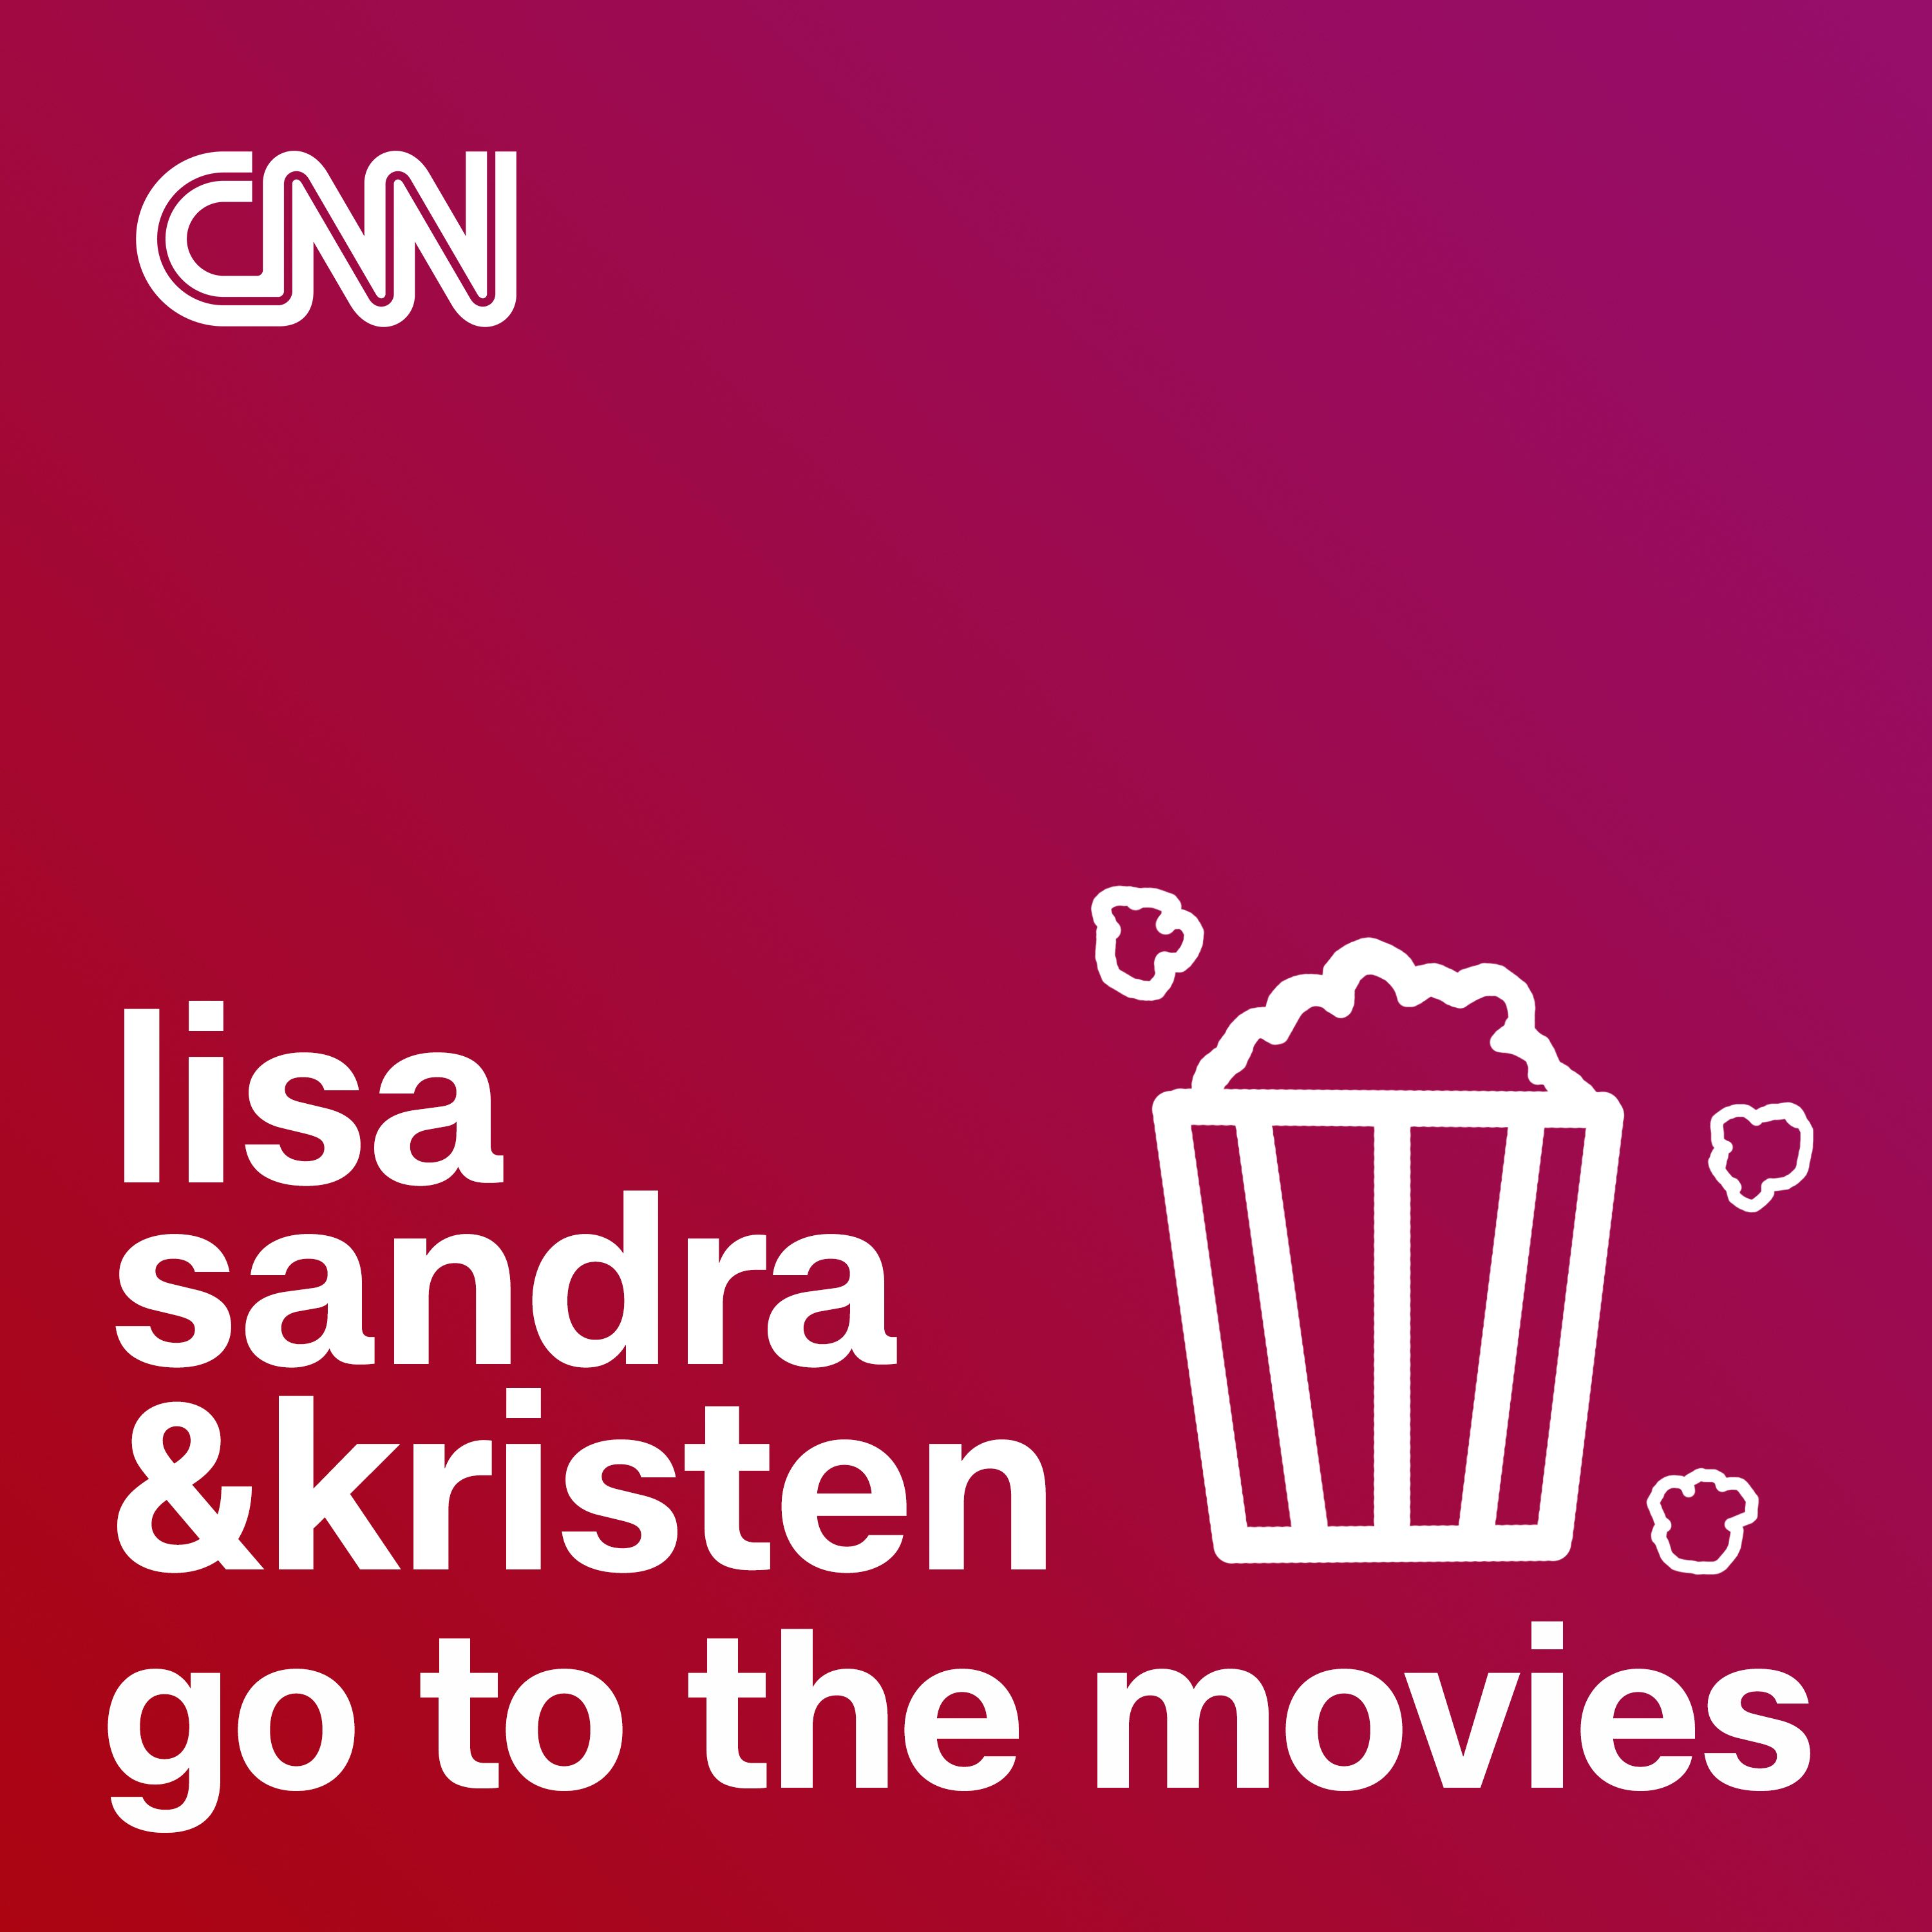 Lisa, Sandra & Kristen Go to the Movies